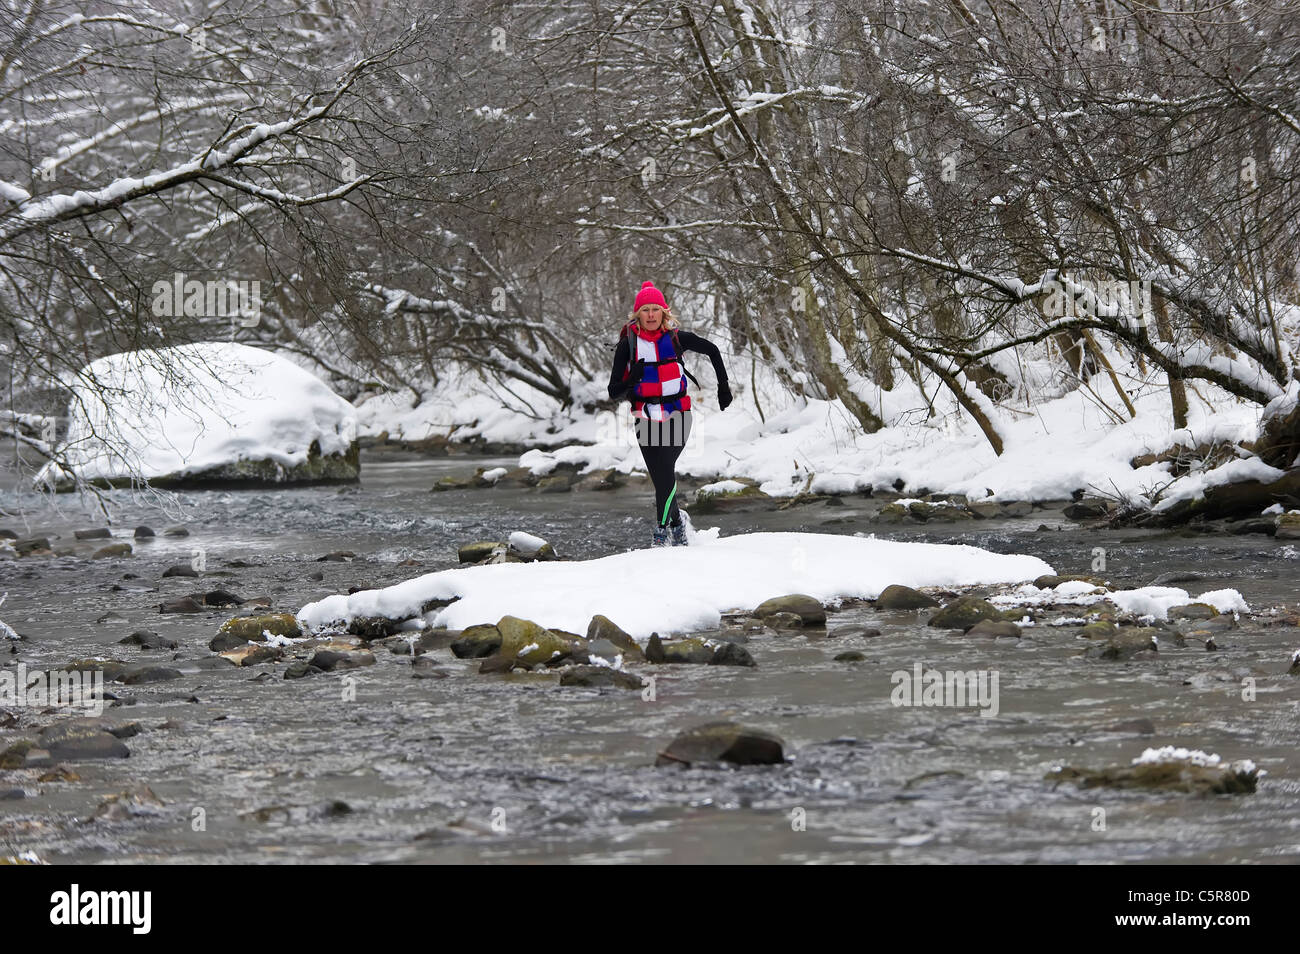 A jogger crossing a cold alpine river. - Stock Image